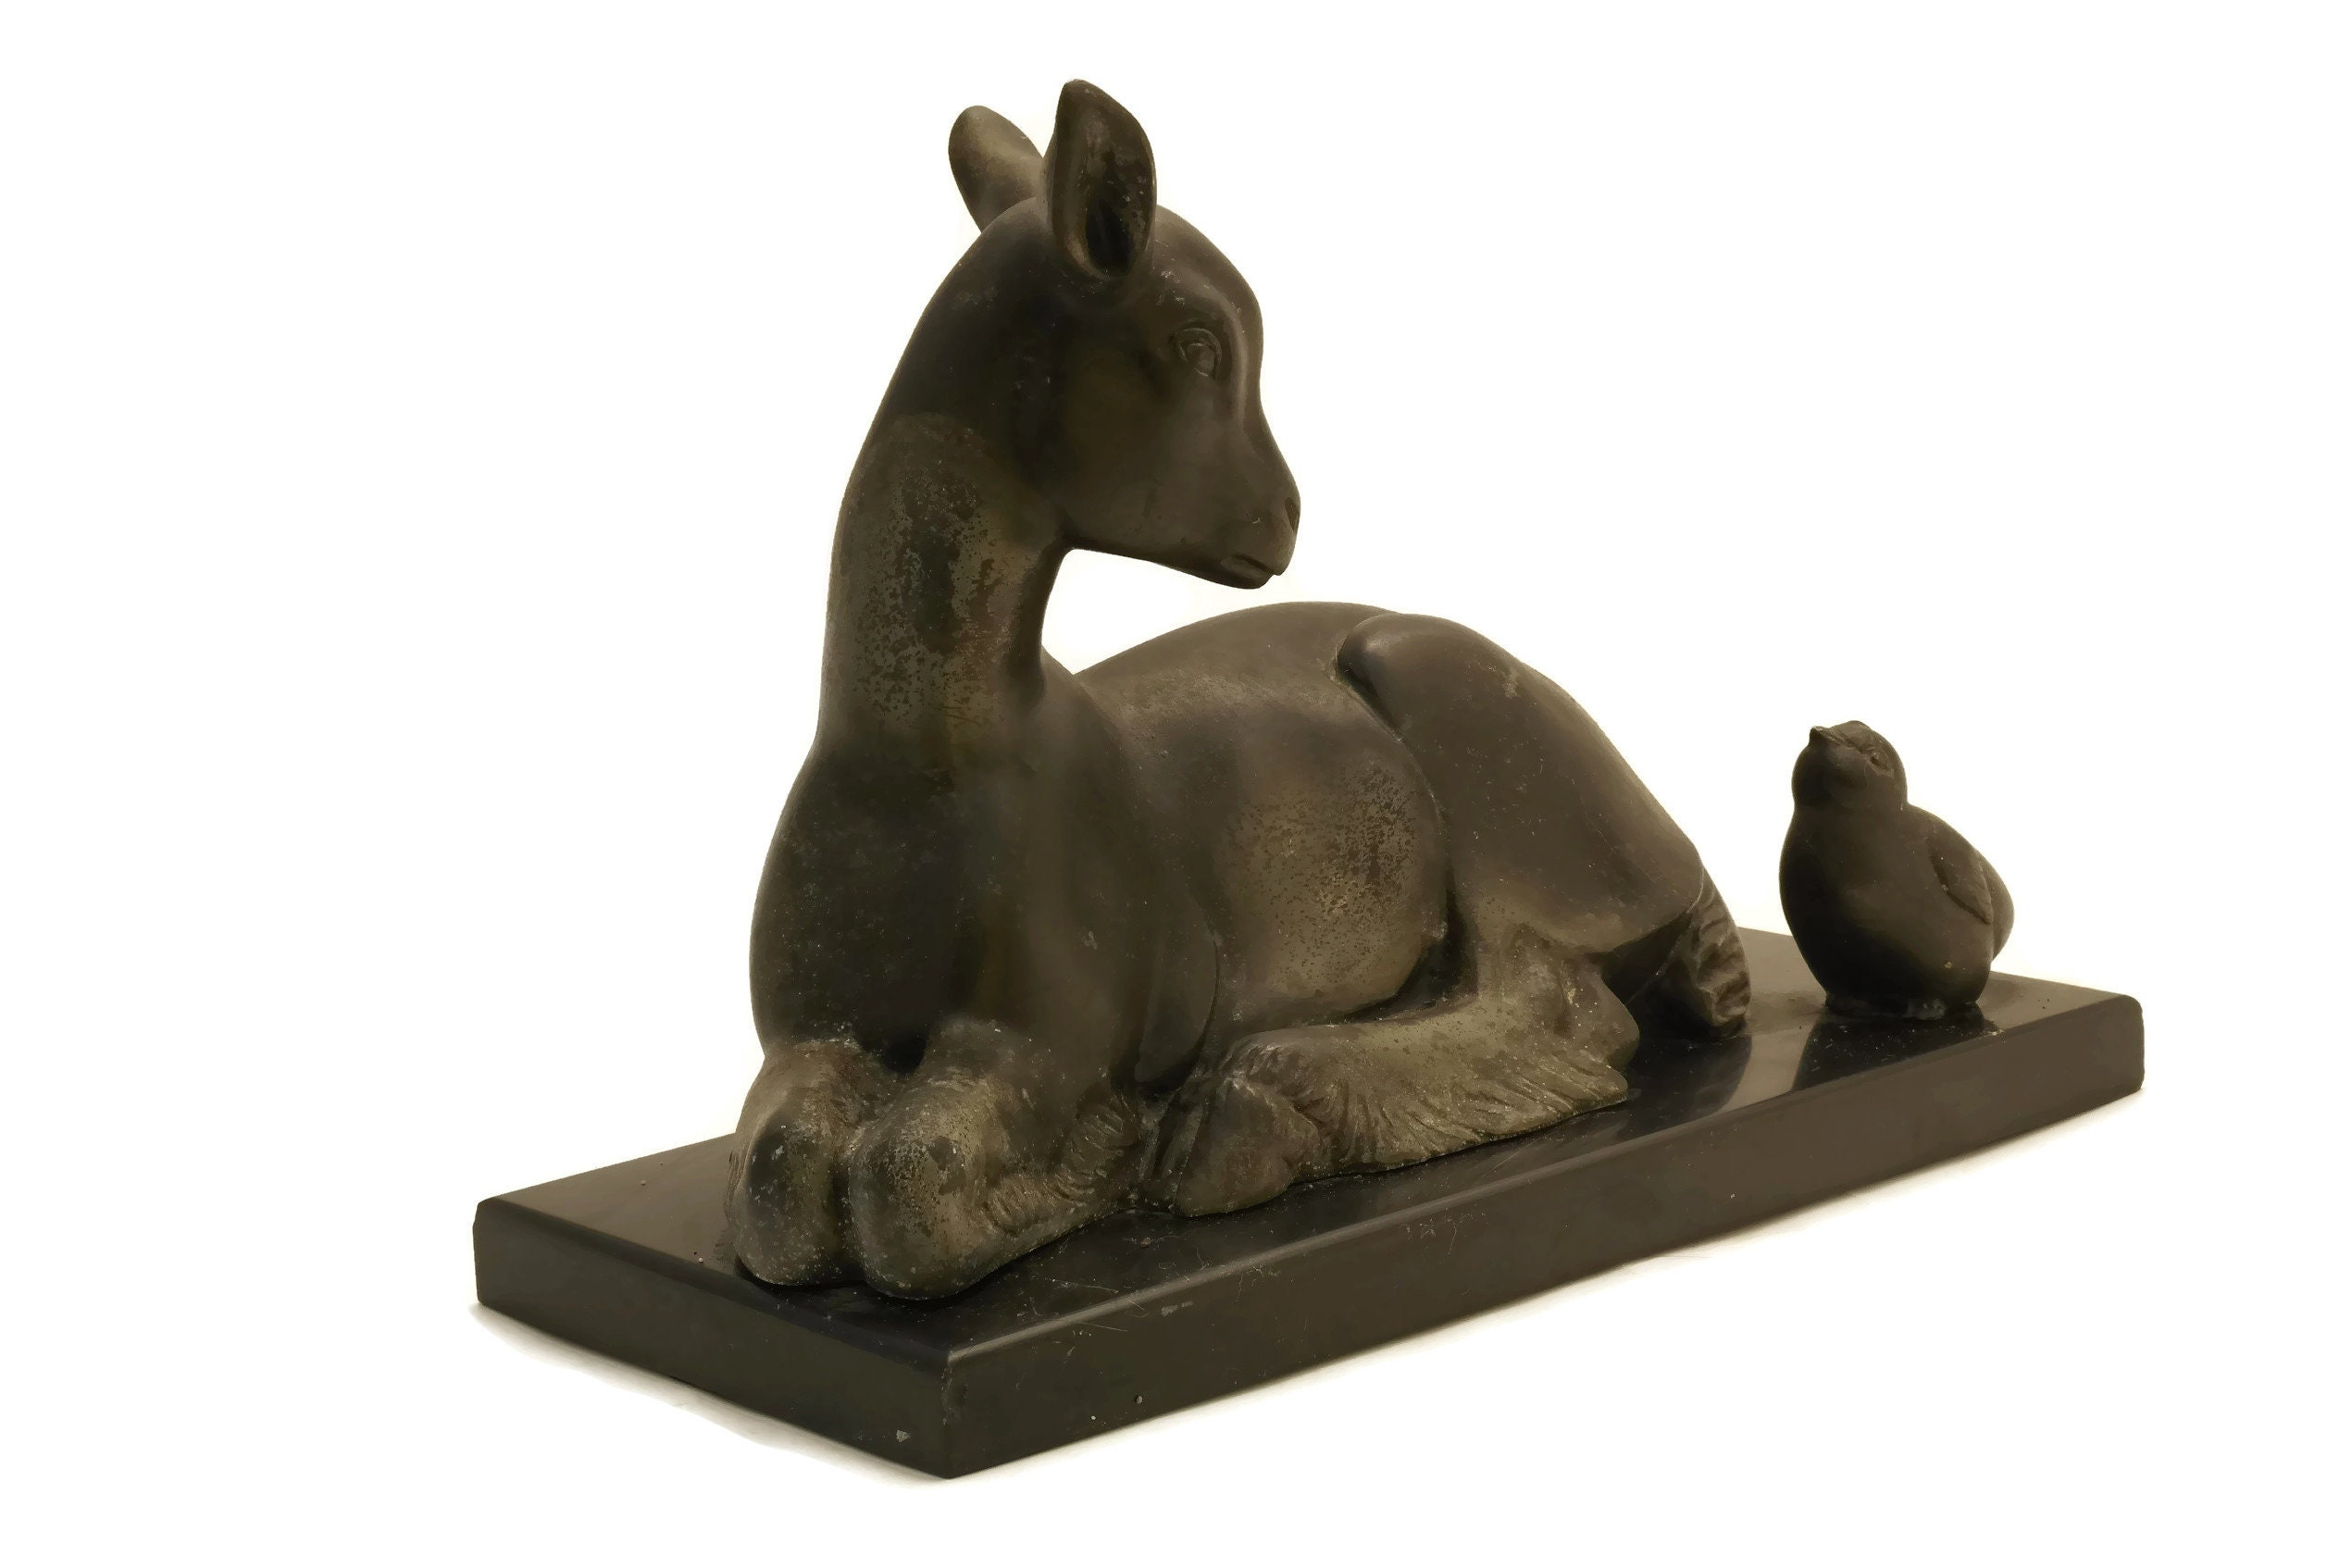 French Art Deco Animal Statue With Lamb And Chick Figurines Newborn